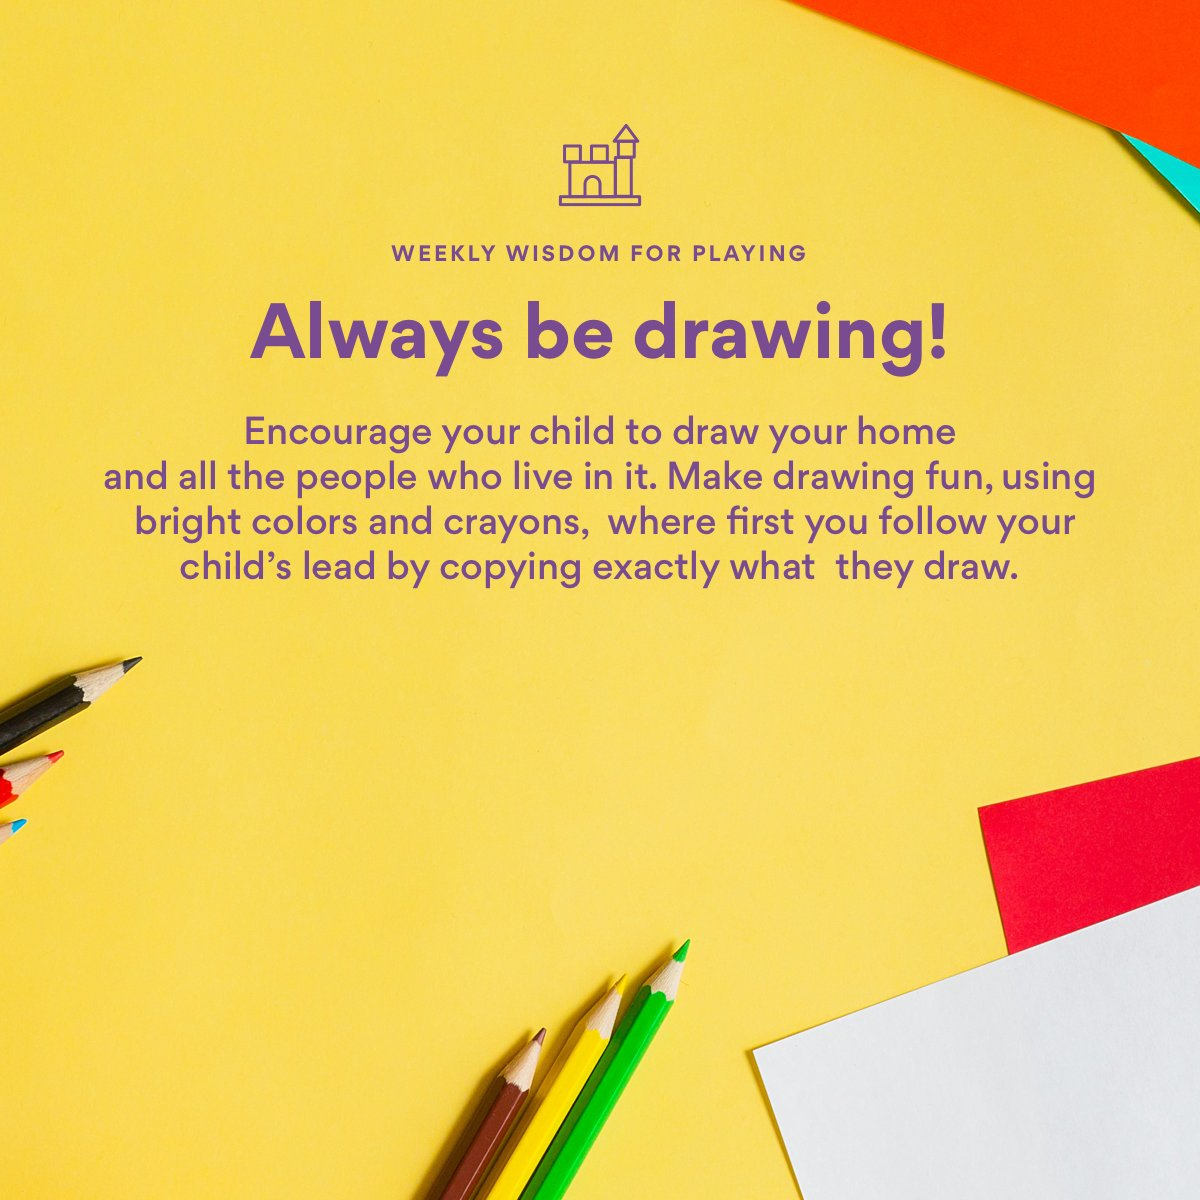 One of the most easily overlooked such skills is drawing. Especially kids who sometimes have difficulties speaking find drawing to be a great way of expressing themselves.   Does your child enjoy drawing? Post an example of your child's best work.